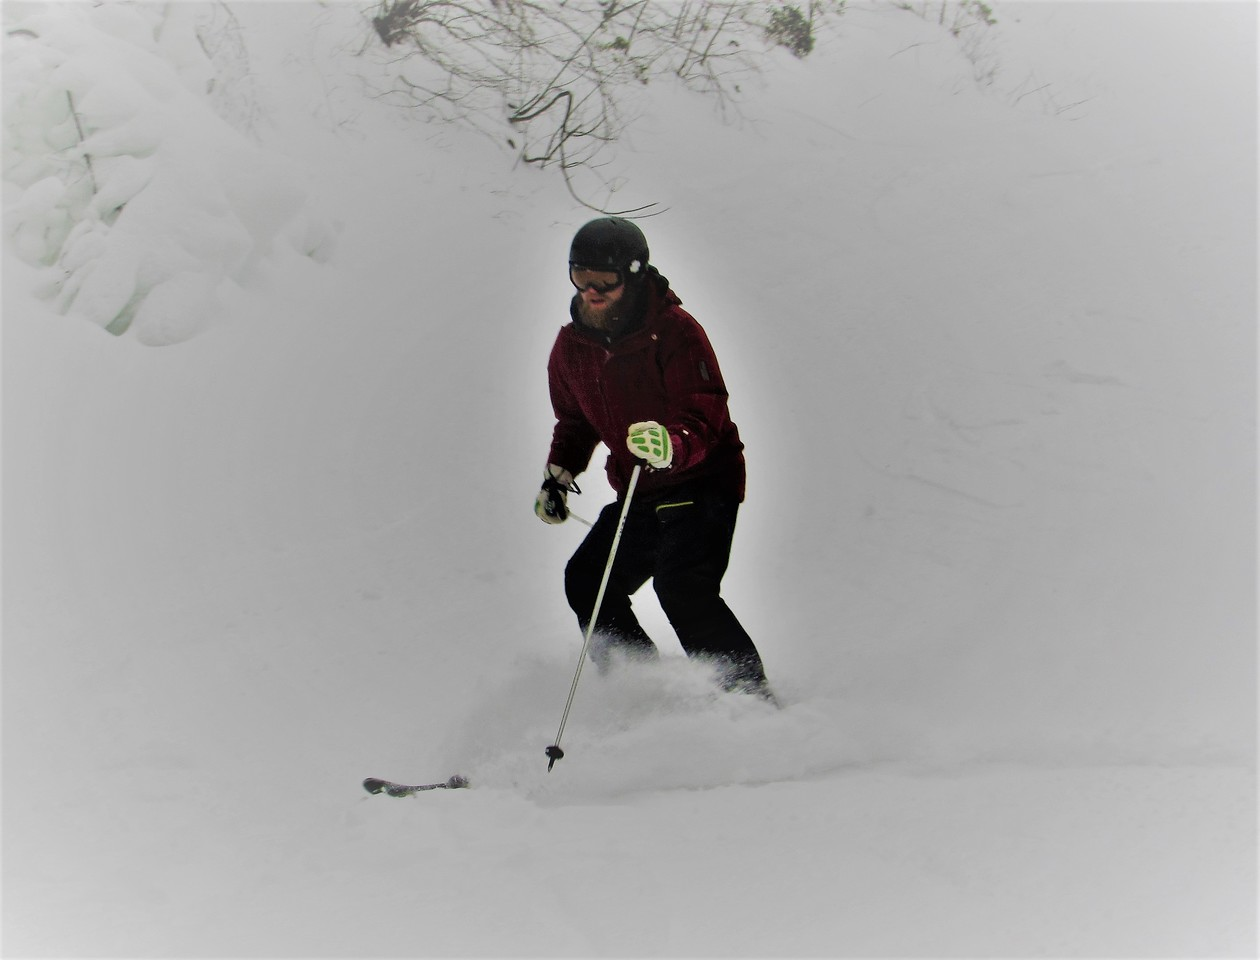 You got to love powder. Todd sure does.